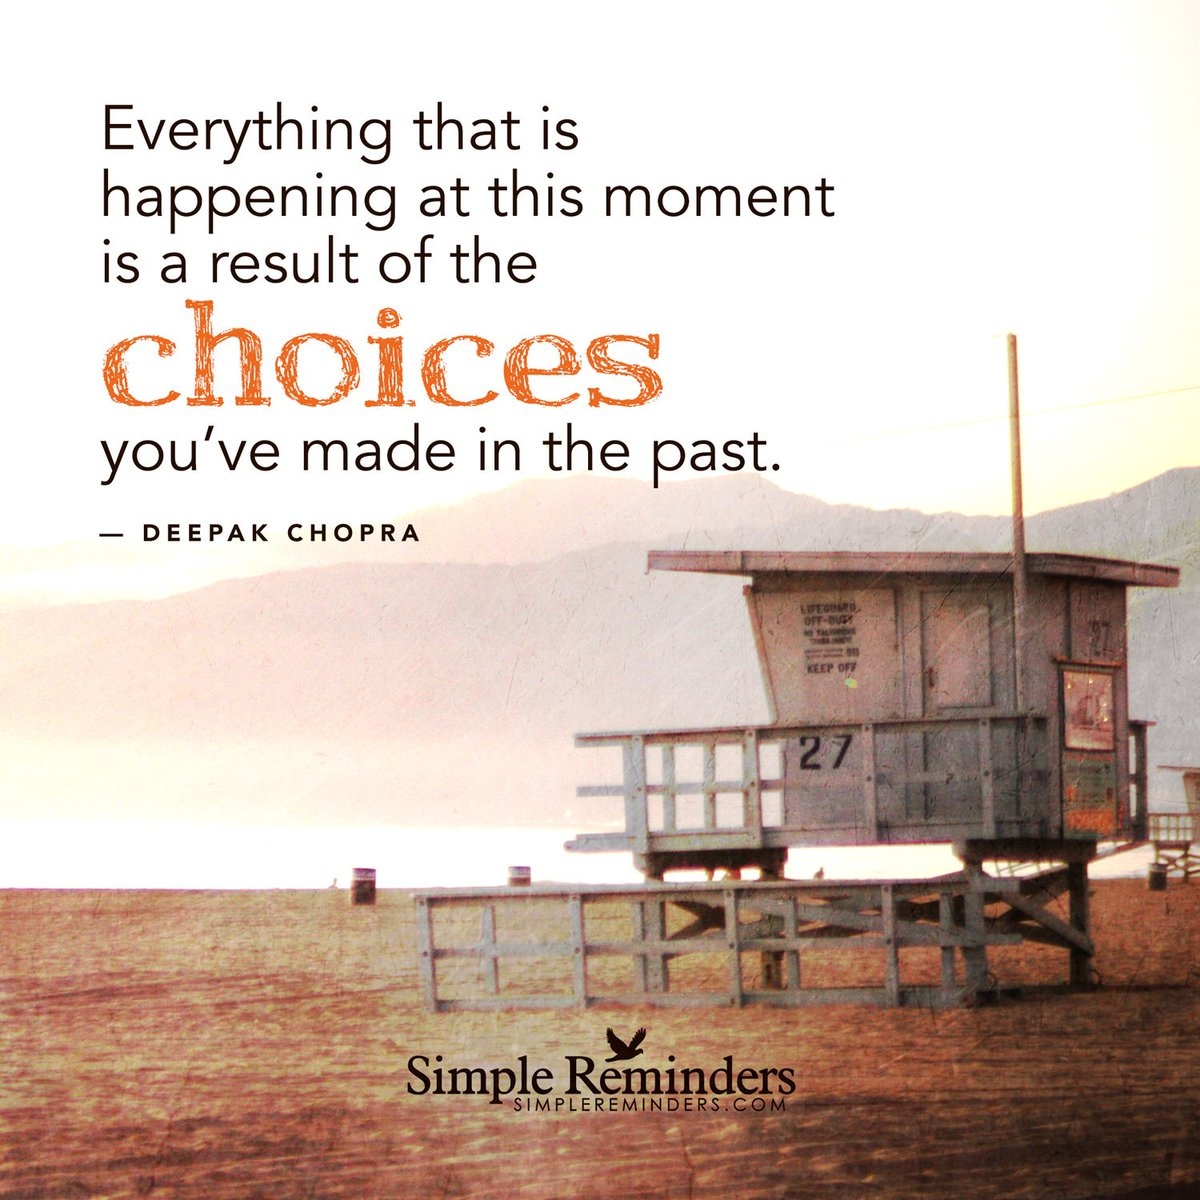 What #choices are you making in your life? Have an amazing day and a fabulous #weekend. &quot;Everything that is happening at this moment is a result of the choices you&#39;ve made in the past. #DeepakChopra #SimpleReminders<br>http://pic.twitter.com/S9RUSnnI9A